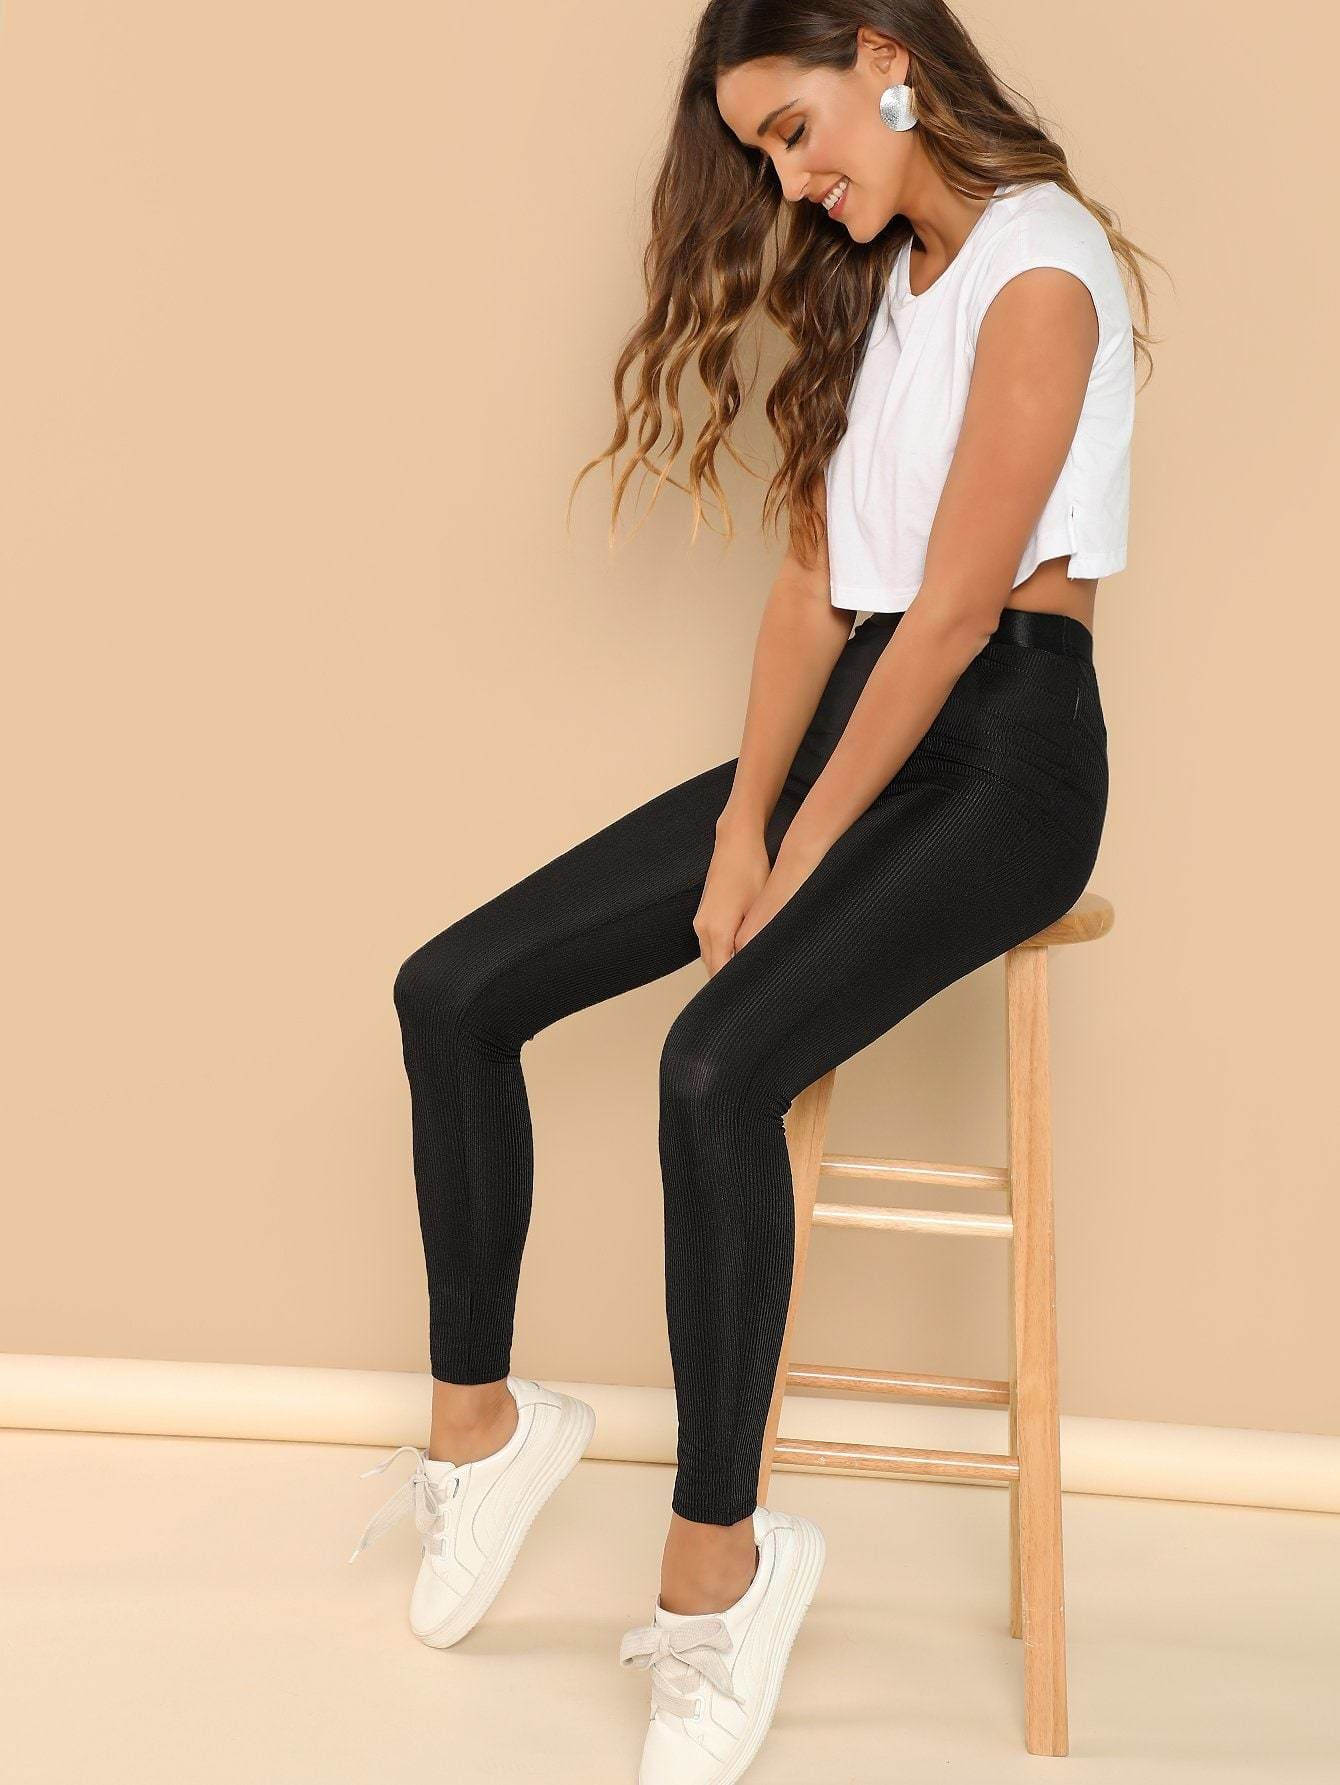 Ribbon Waistband Rib Knit Leggings - Fittness Leggings